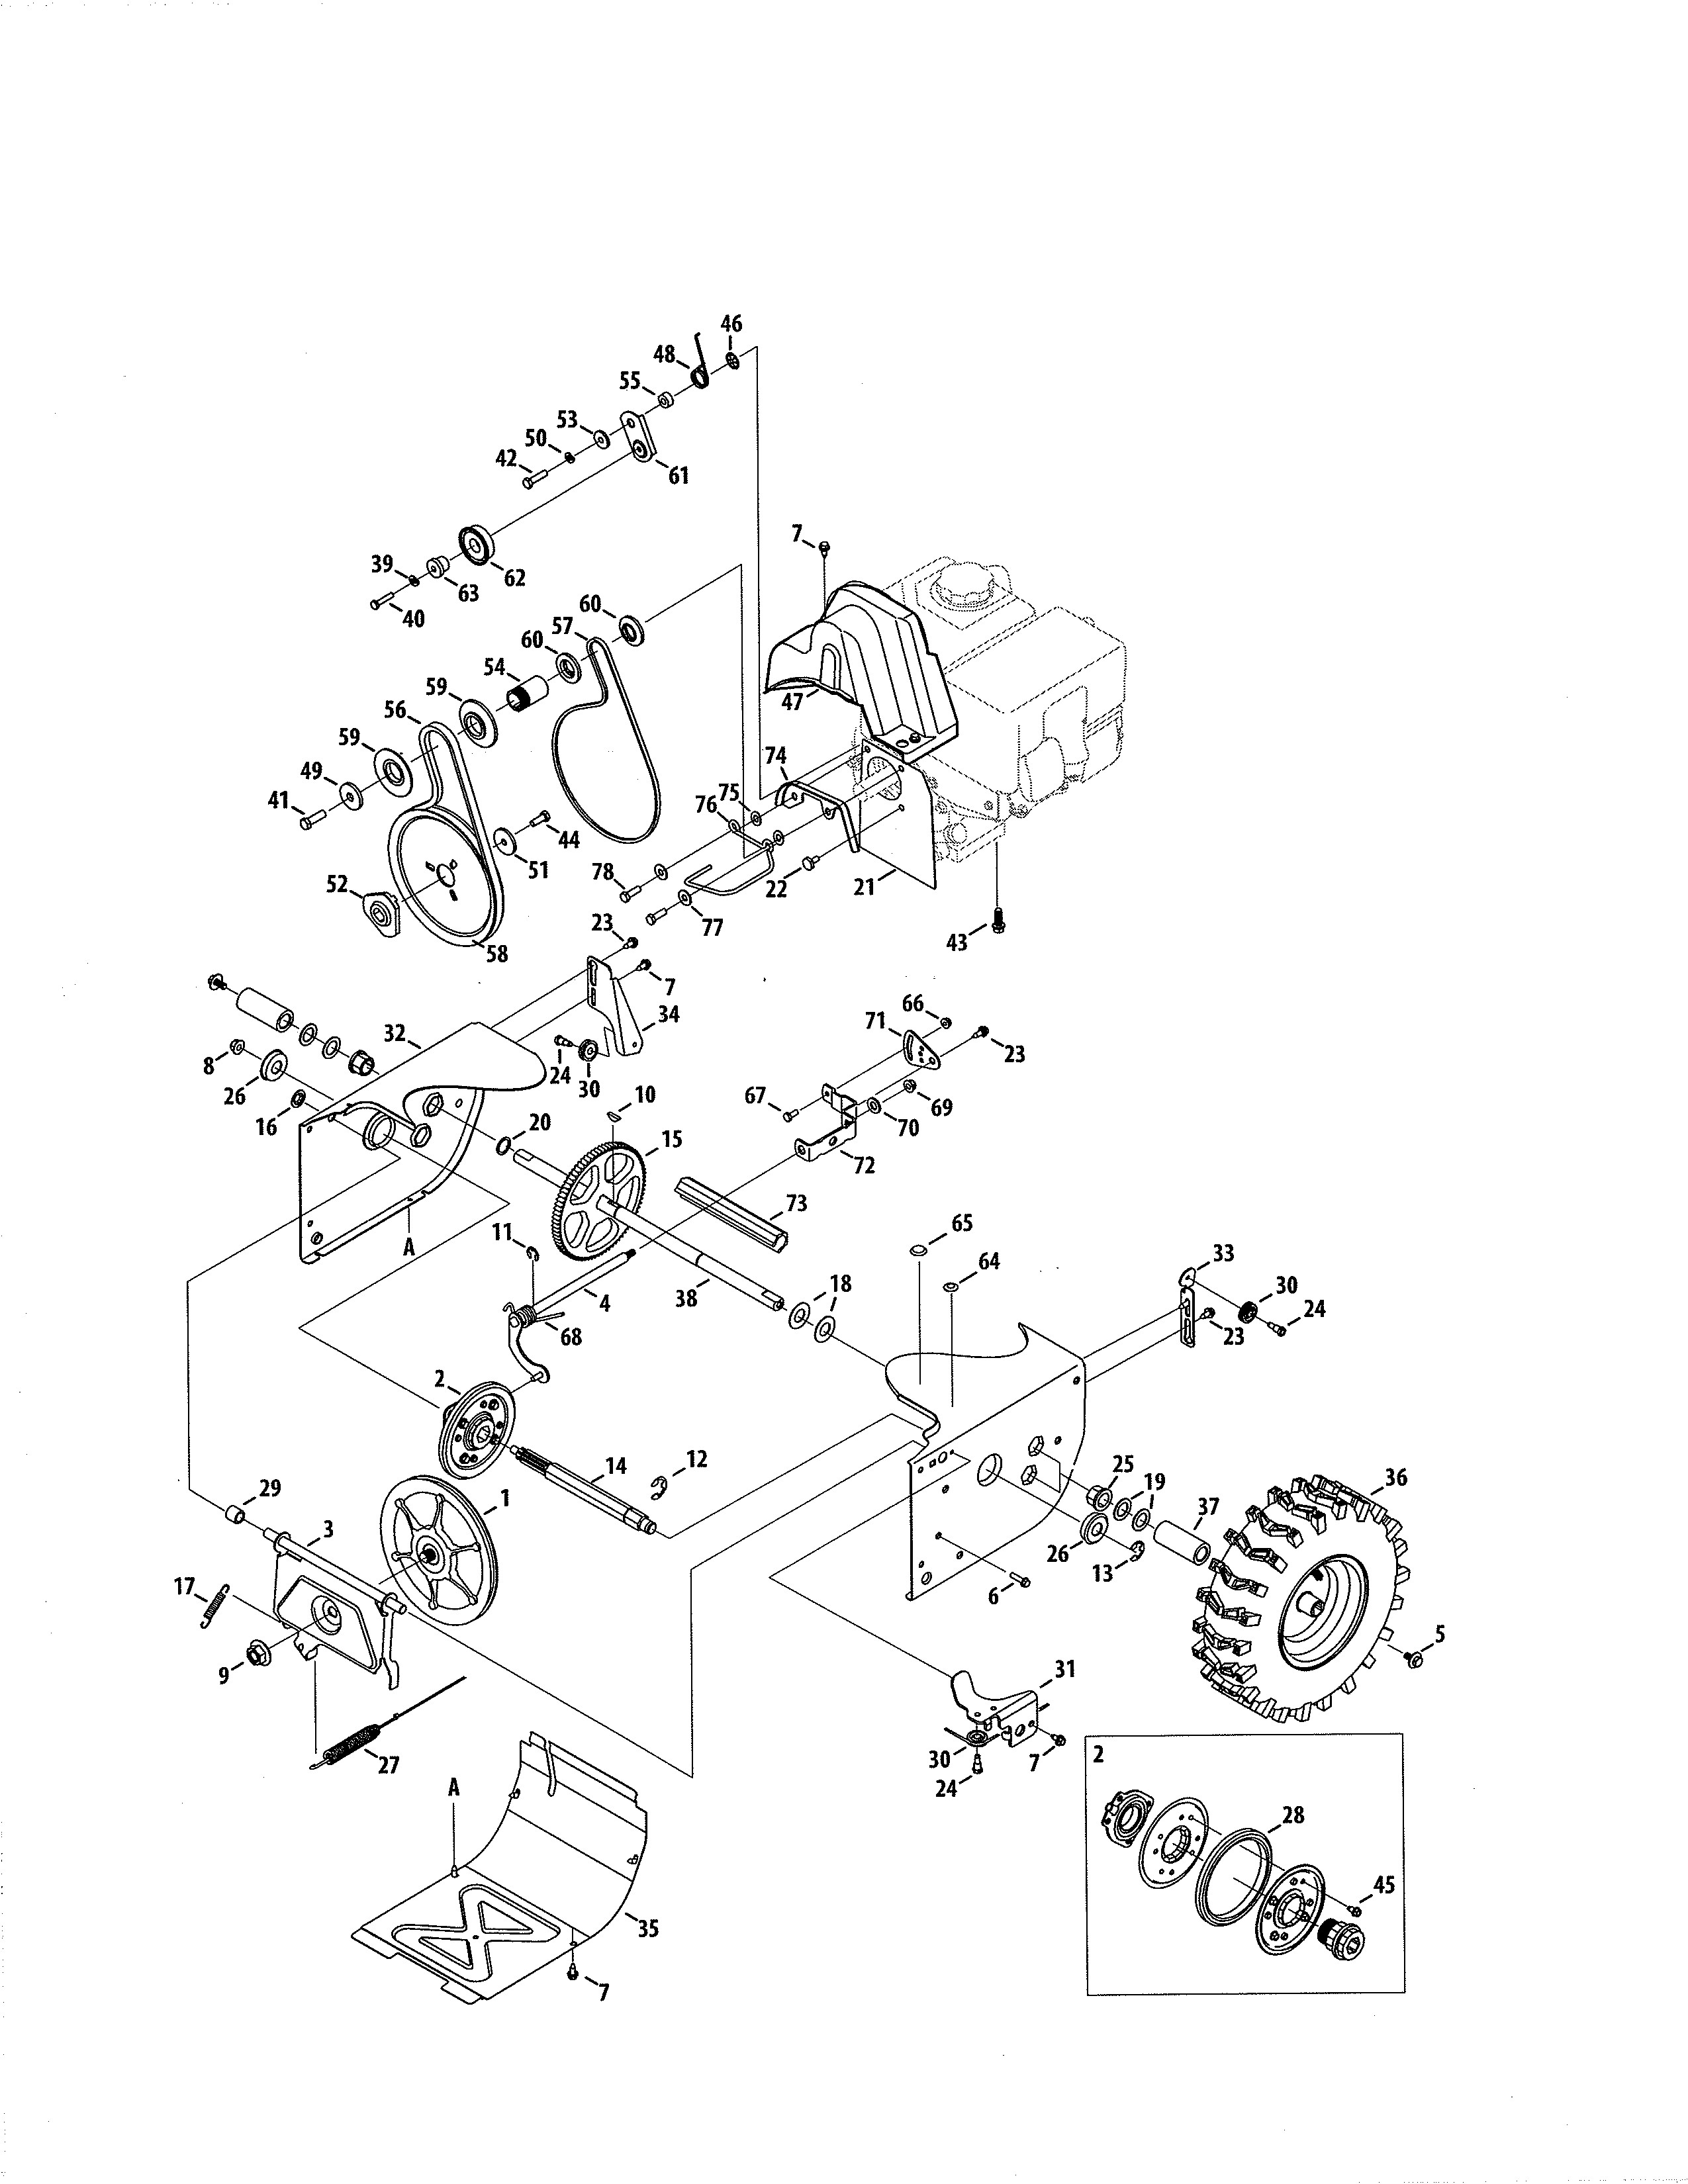 Craftsman Leaf Blower Parts Diagram Wel E to toolboxhero I Will Help You Parts Free Able Of Craftsman Leaf Blower Parts Diagram